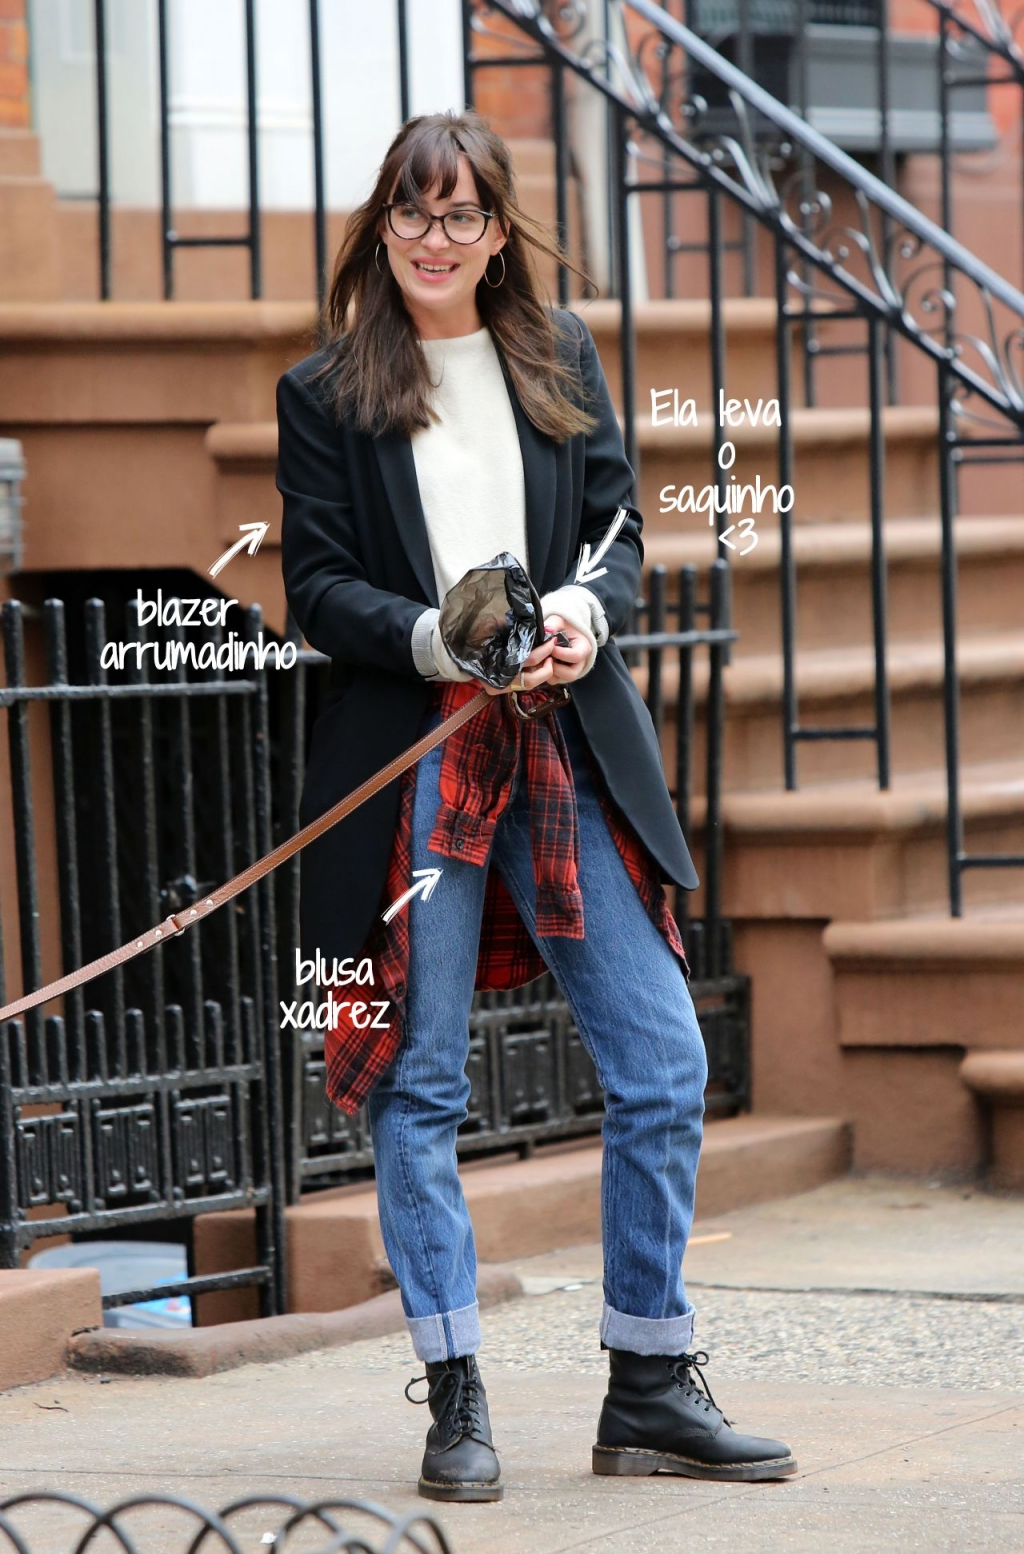 dakota-johnson-walking-her-dog-in-new-york-city-april-2015_1